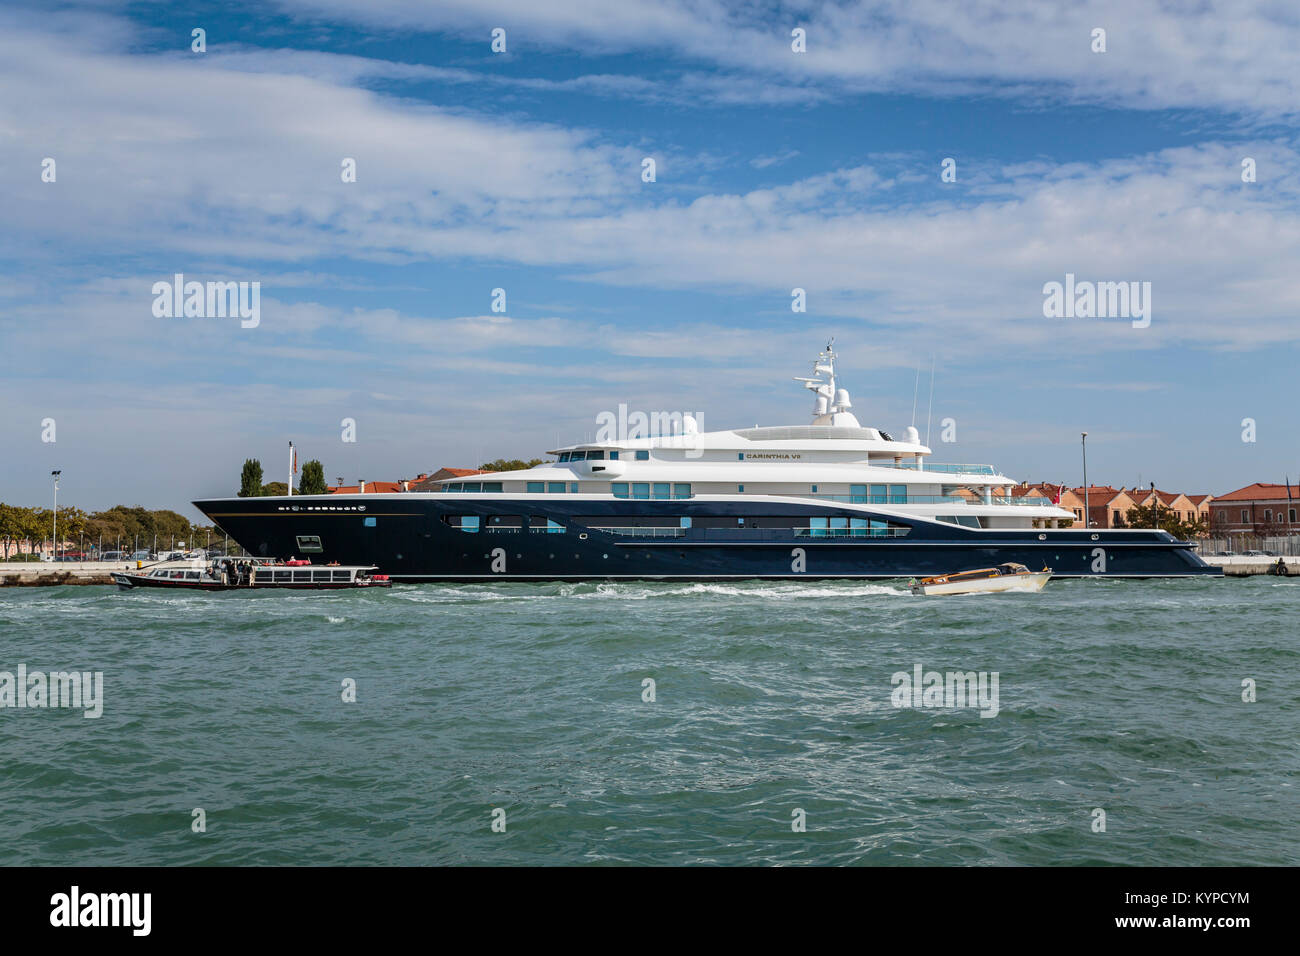 A luxury yacht at the port in Veneto, Venice, Italy, Europe. - Stock Image